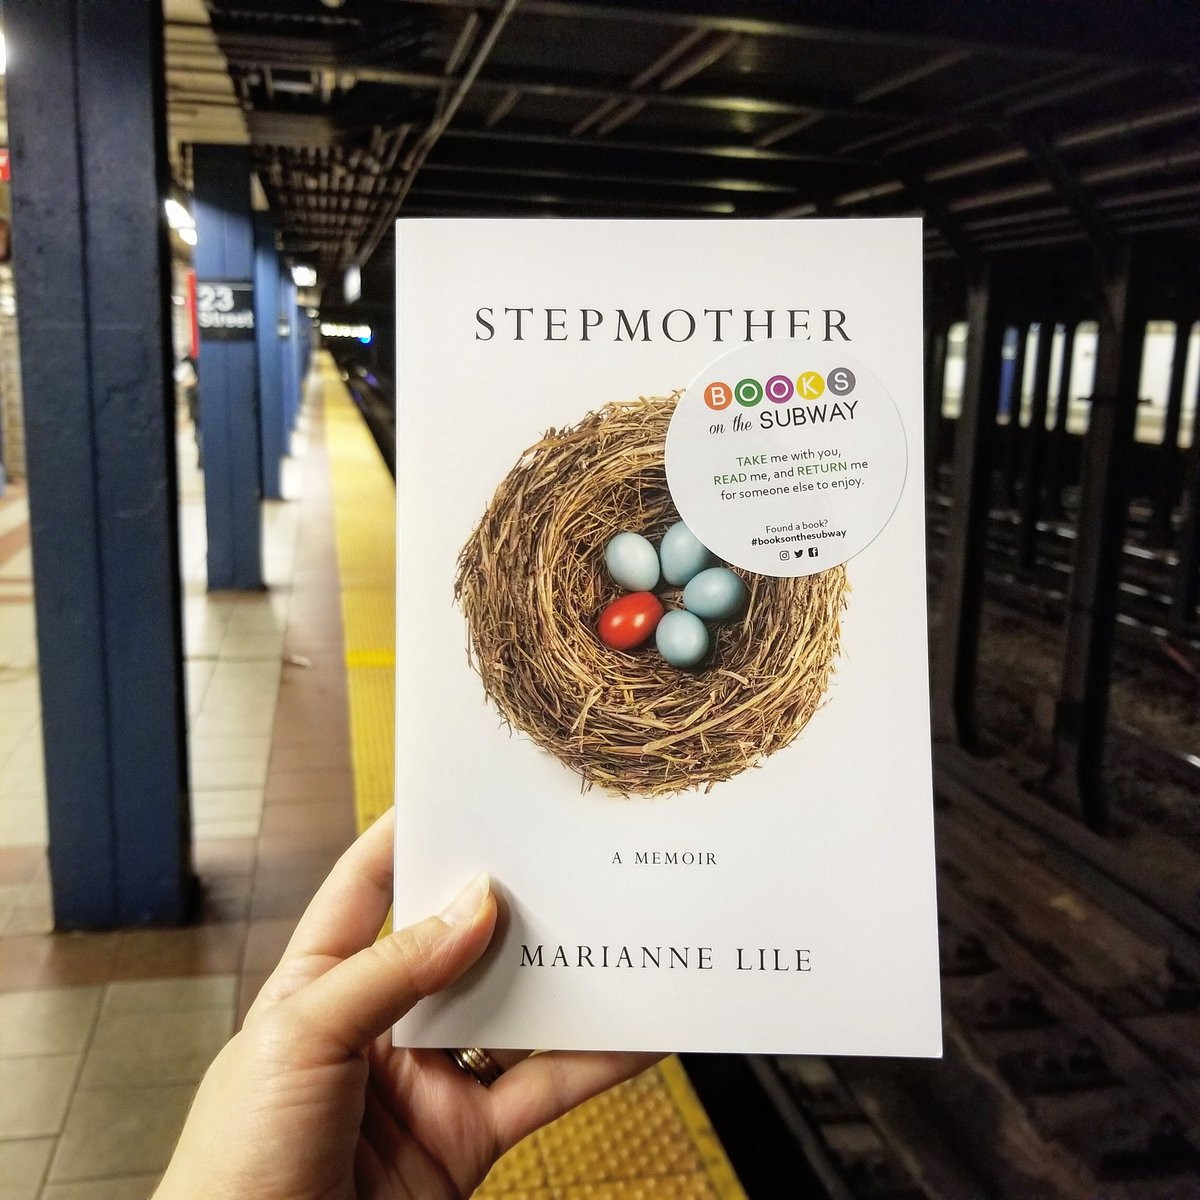 Books On The Subway On Twitter Being A Stepmom Is A Hard Role To